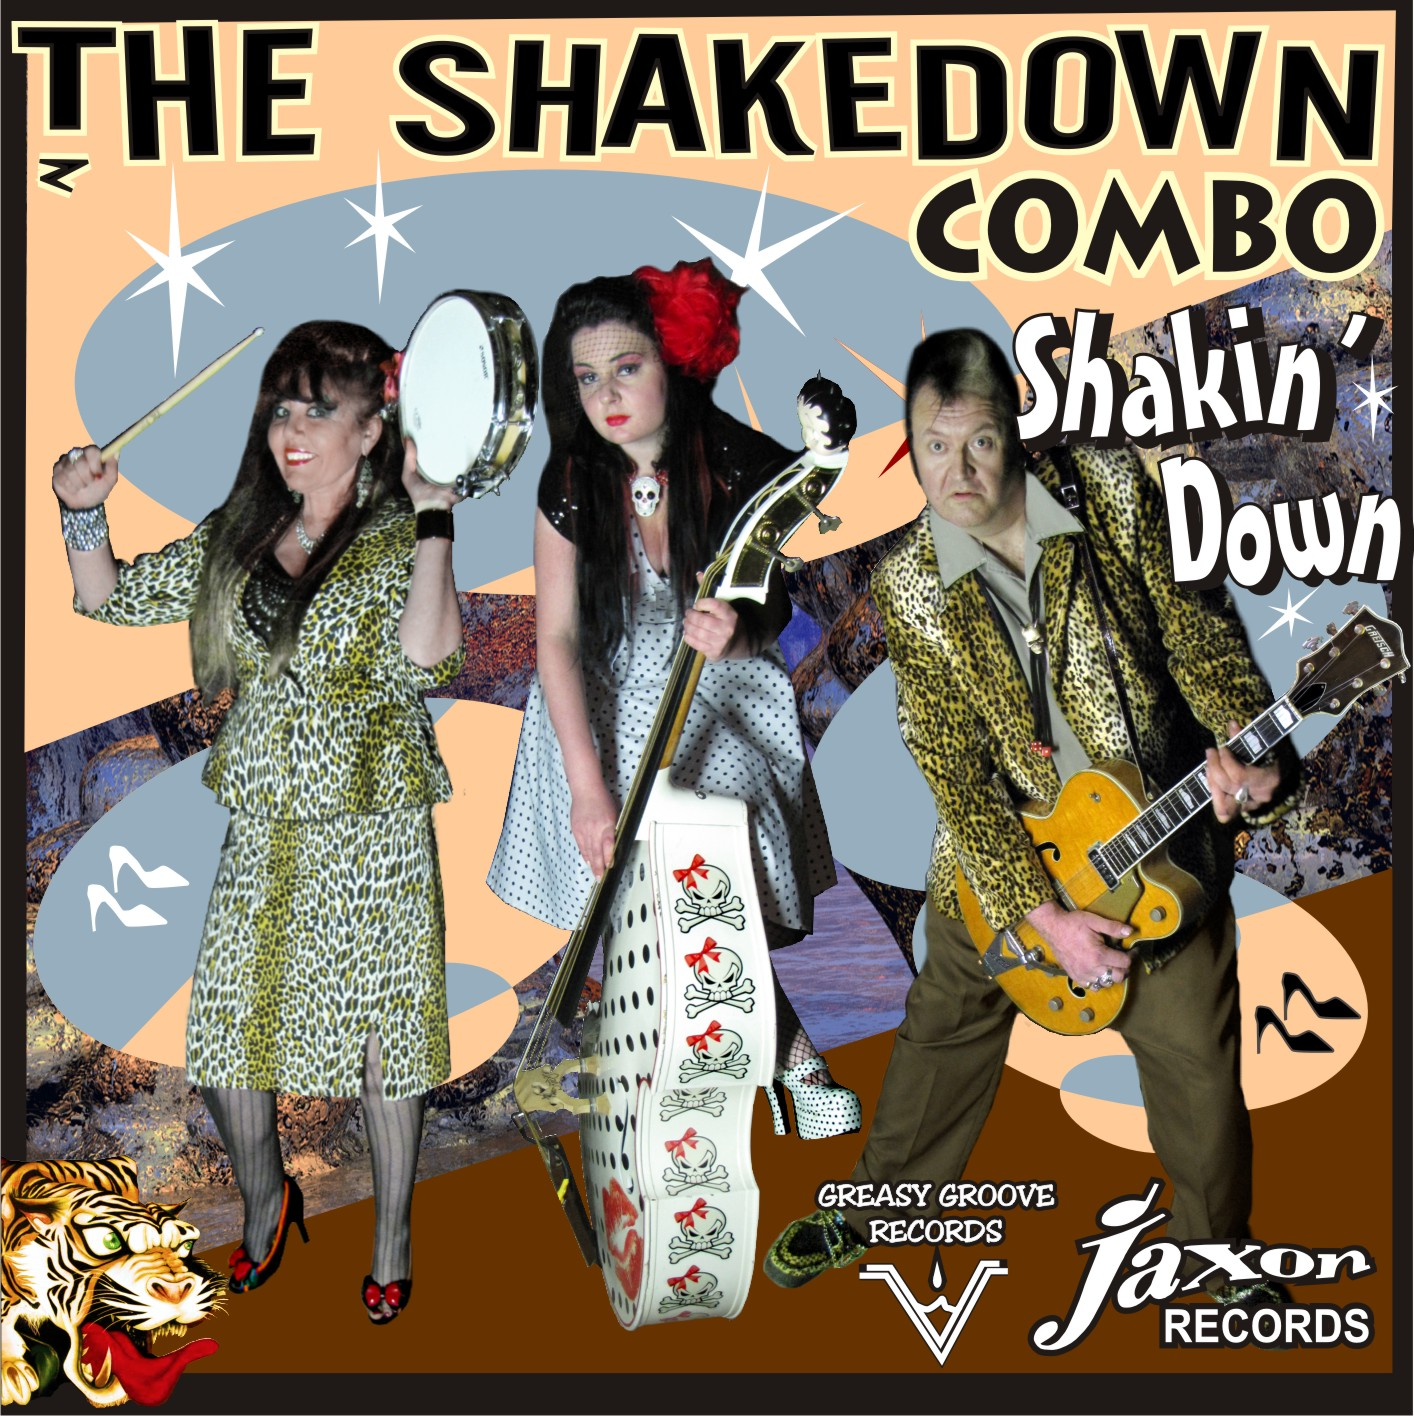 The Shakedown Combo Shakin Down